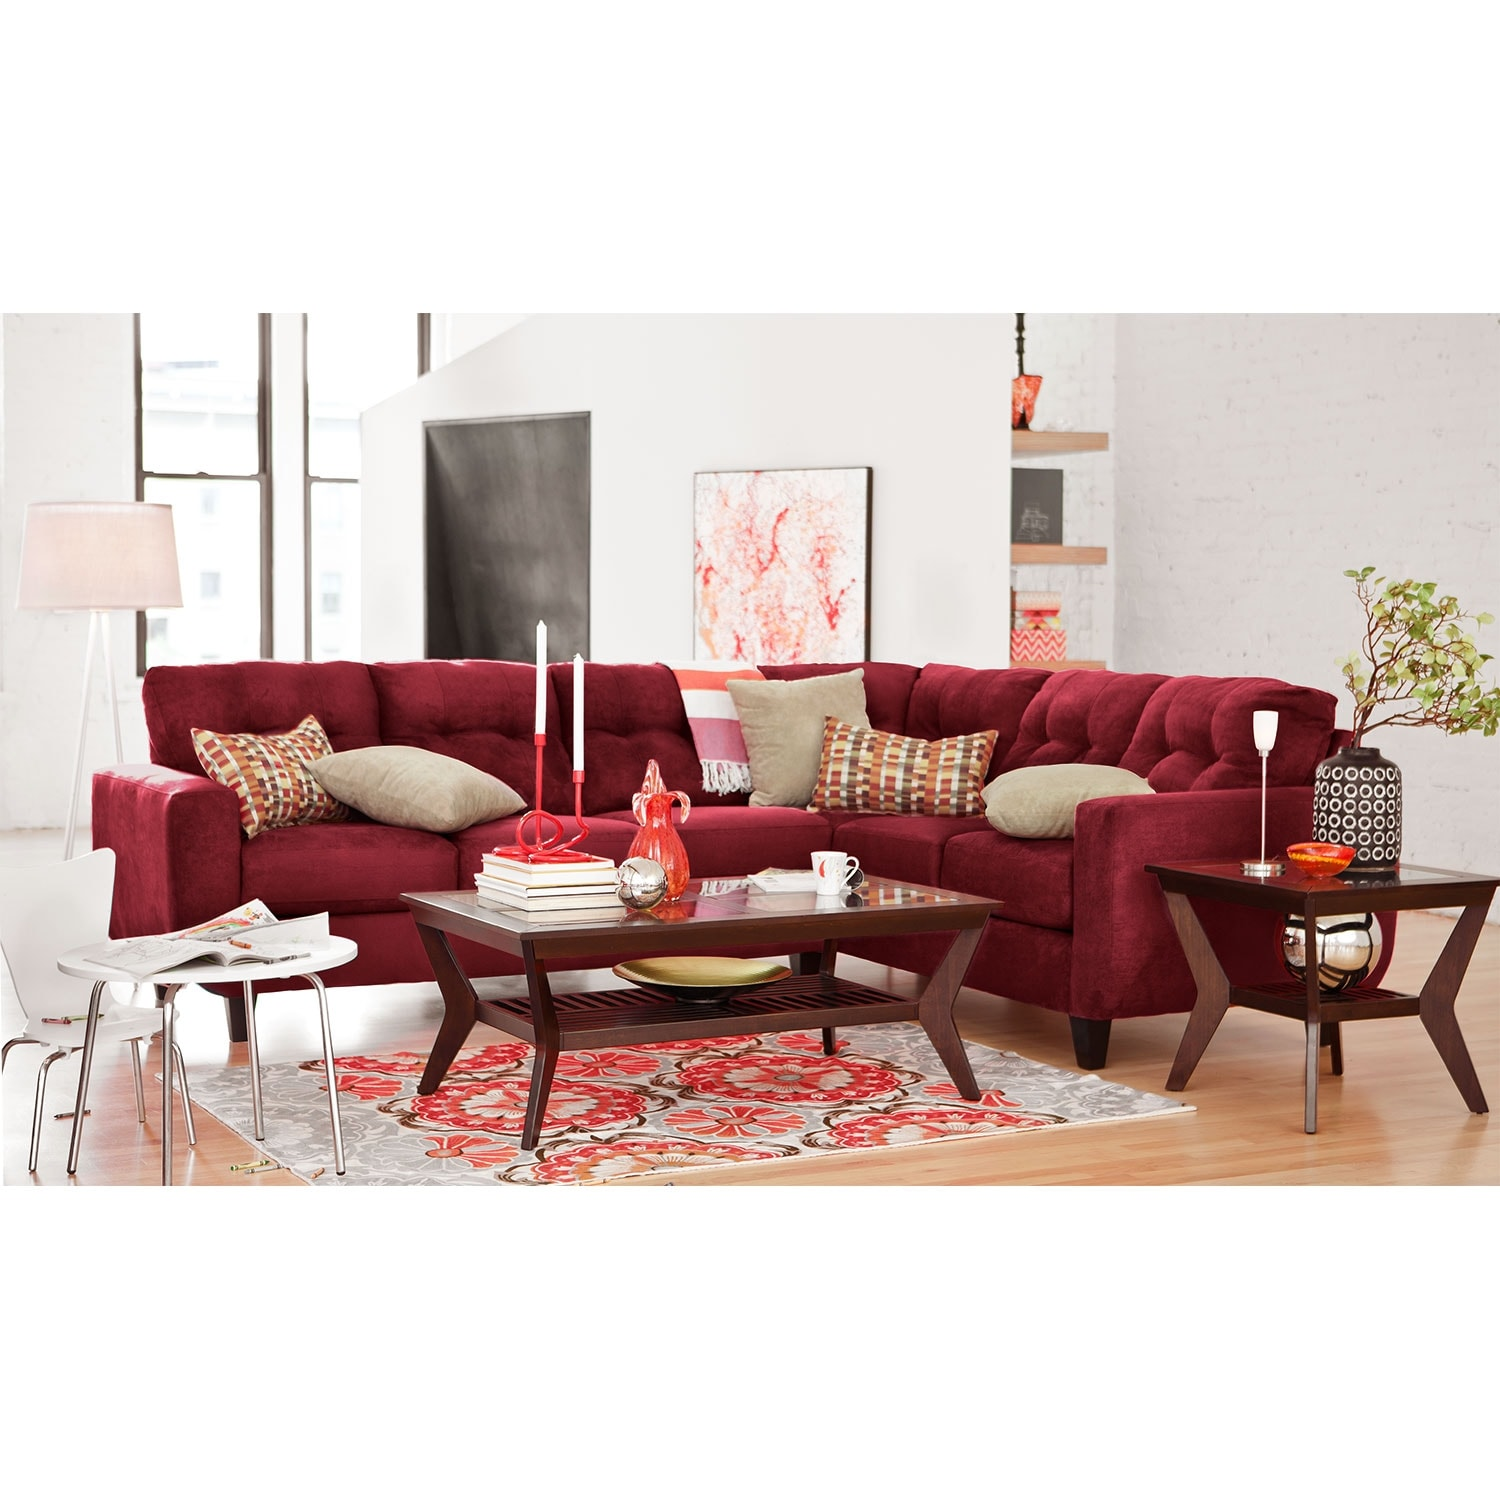 West Village 2 Piece Sectional Red